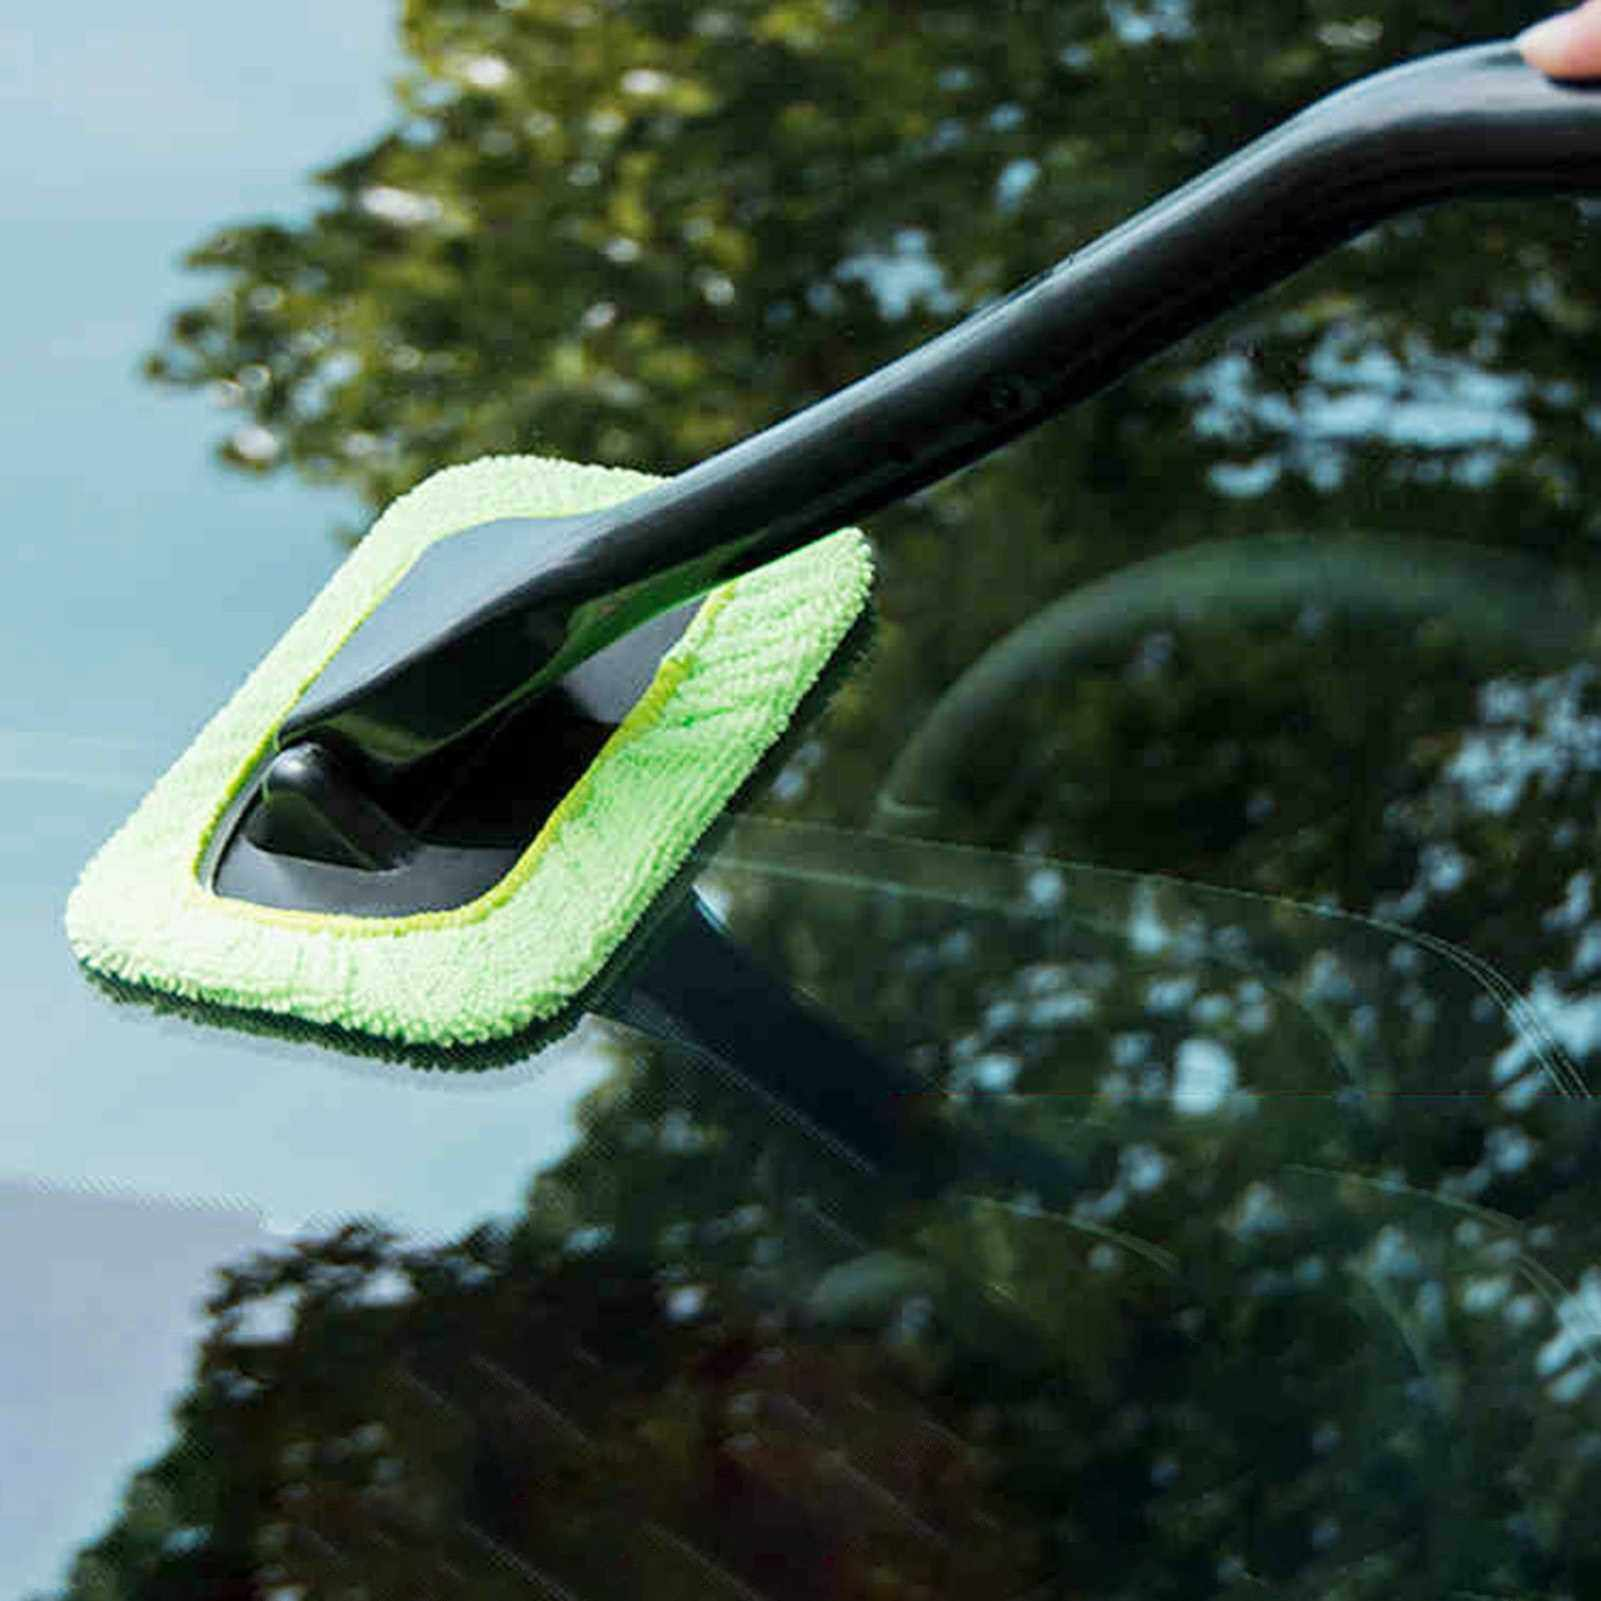 New Microfiber Auto Window Cleaner Windshield Fast Easy Shine Brush Handy Washable Cleaning Tool (Db)